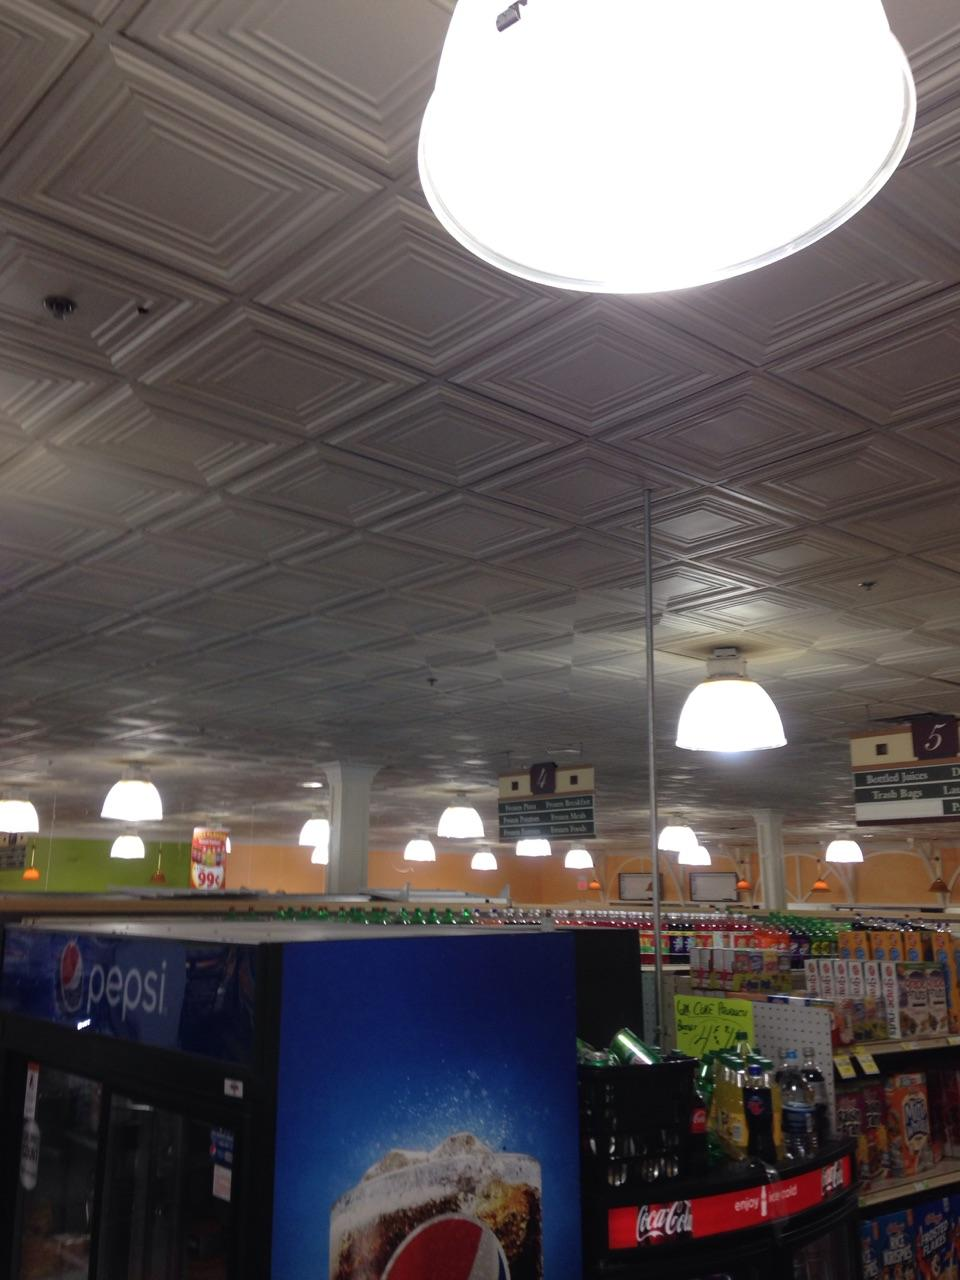 Food Market using Ledradiant 100w LED corn bulb light